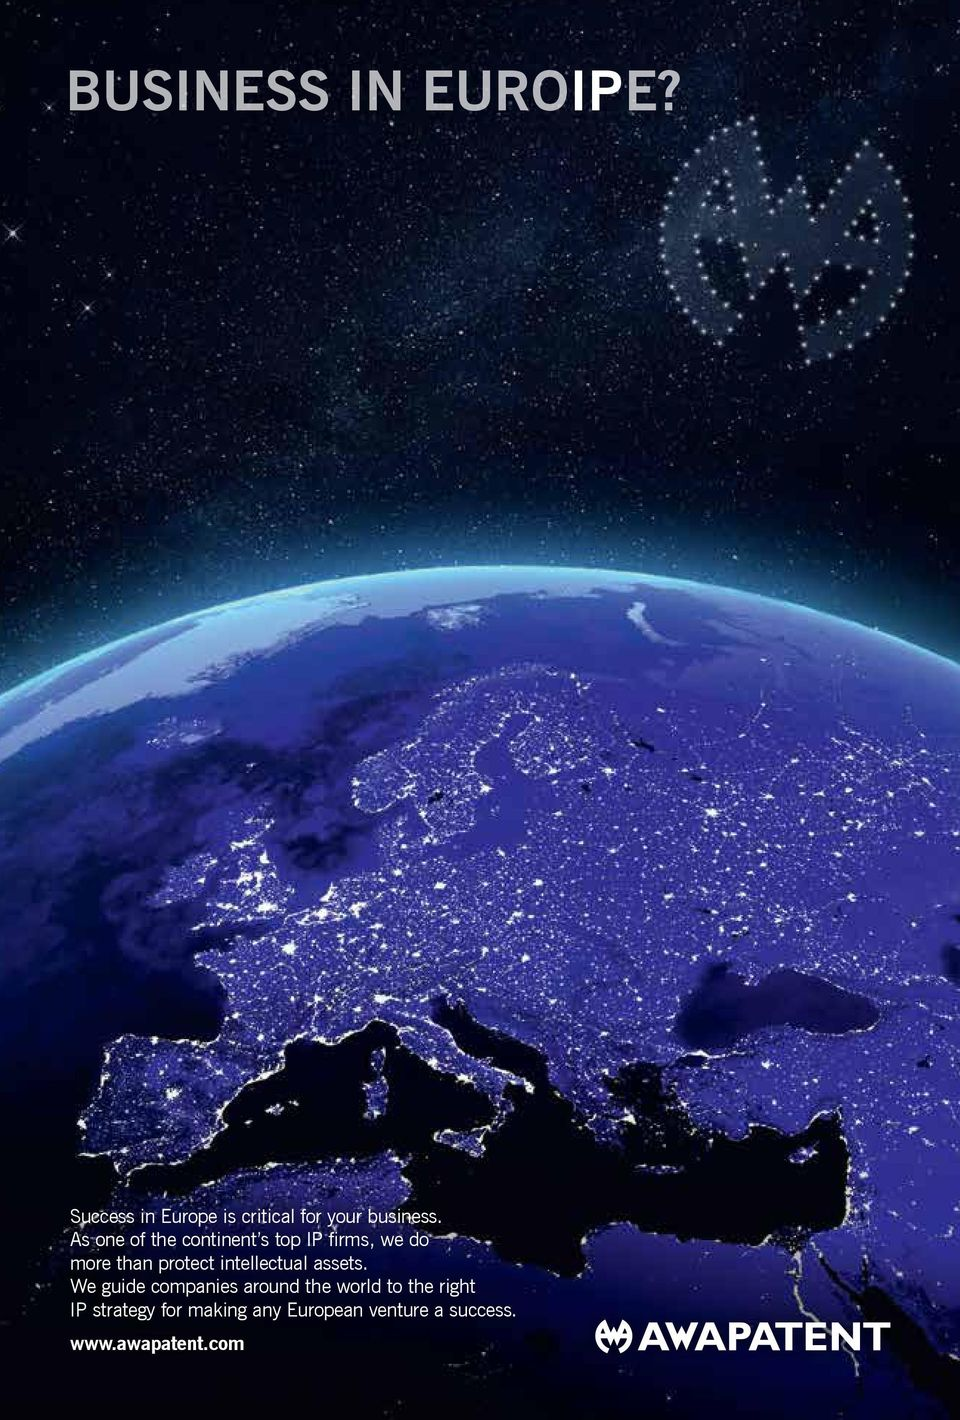 We guide companies around the world to the right IP strategy for making any European